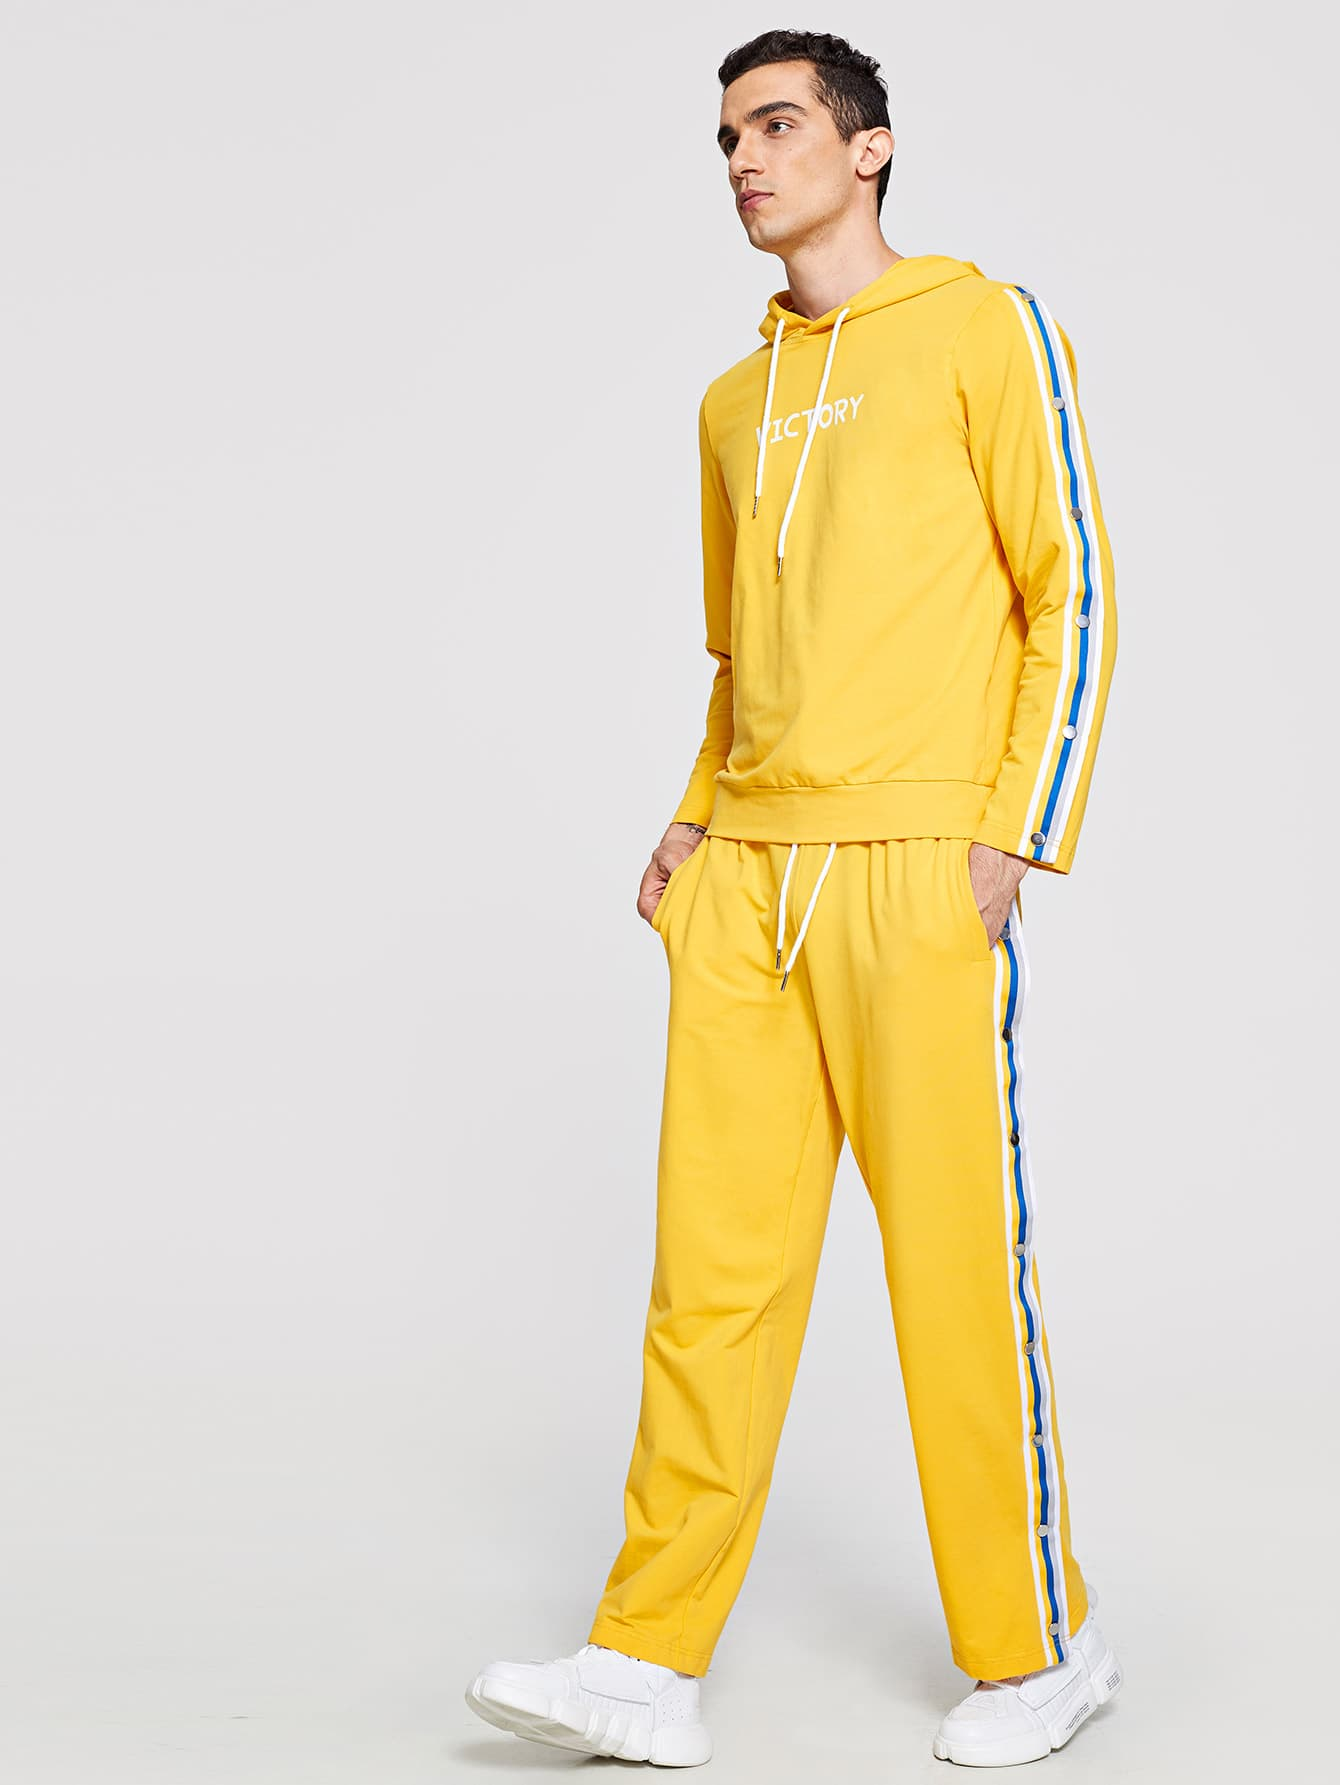 Men Striped and Button Sleeve Top & Pants Set Men Striped and Button Sleeve Top & Pants Set